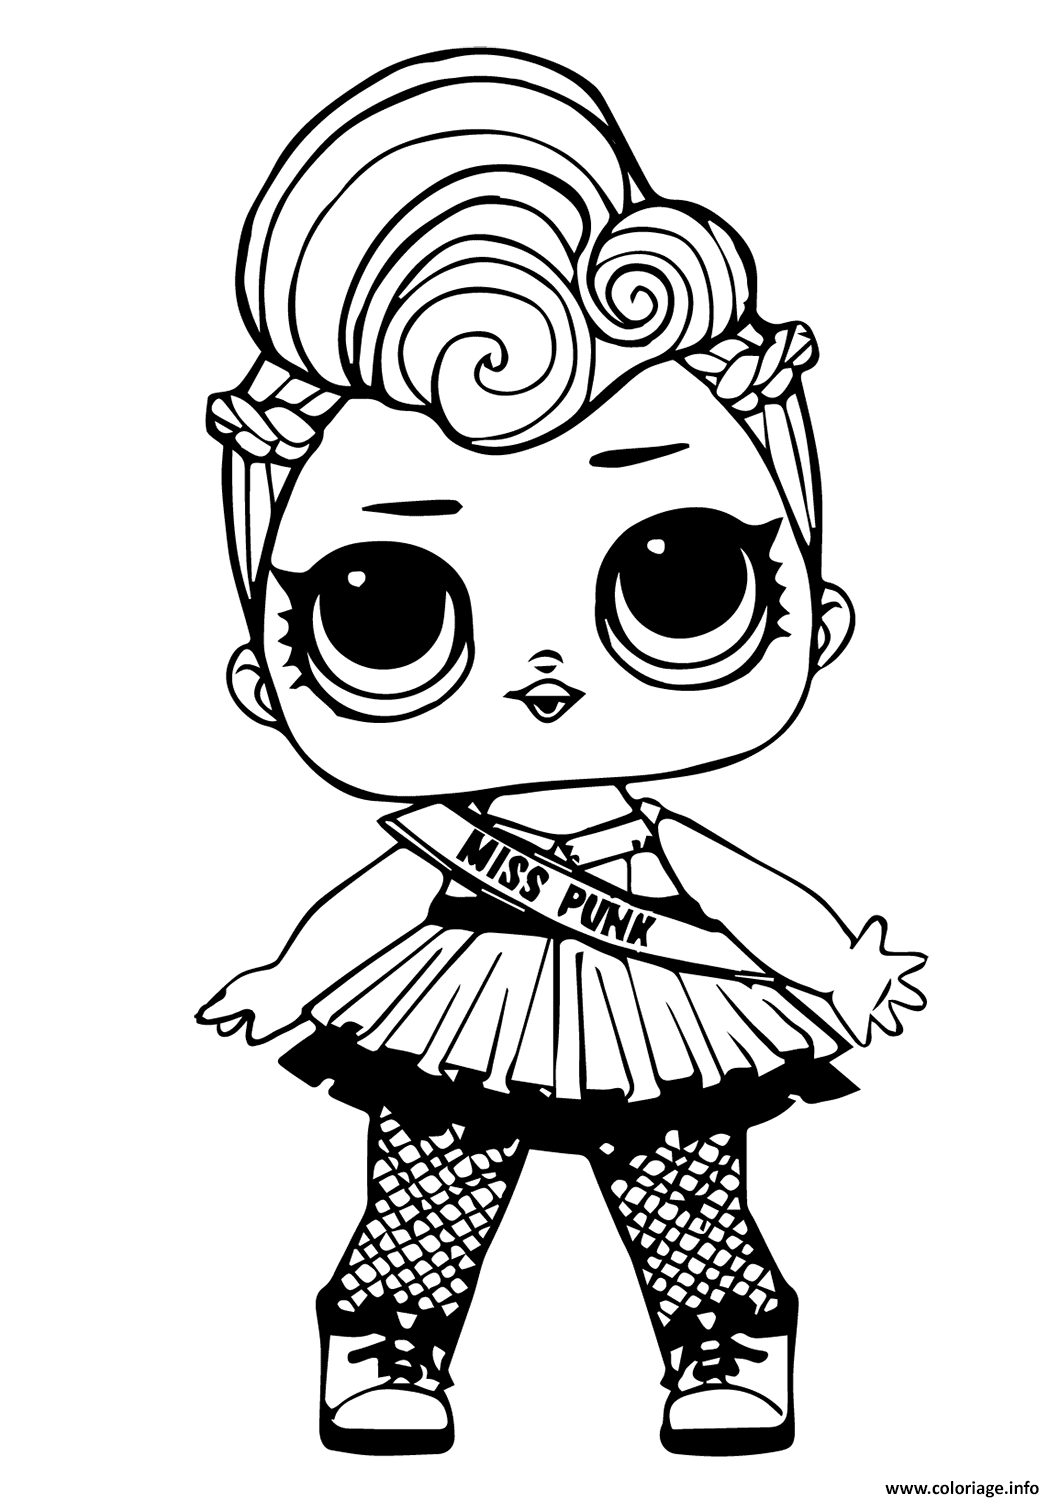 Coloriage Lol Doll Miss Punk Dessin à Imprimer